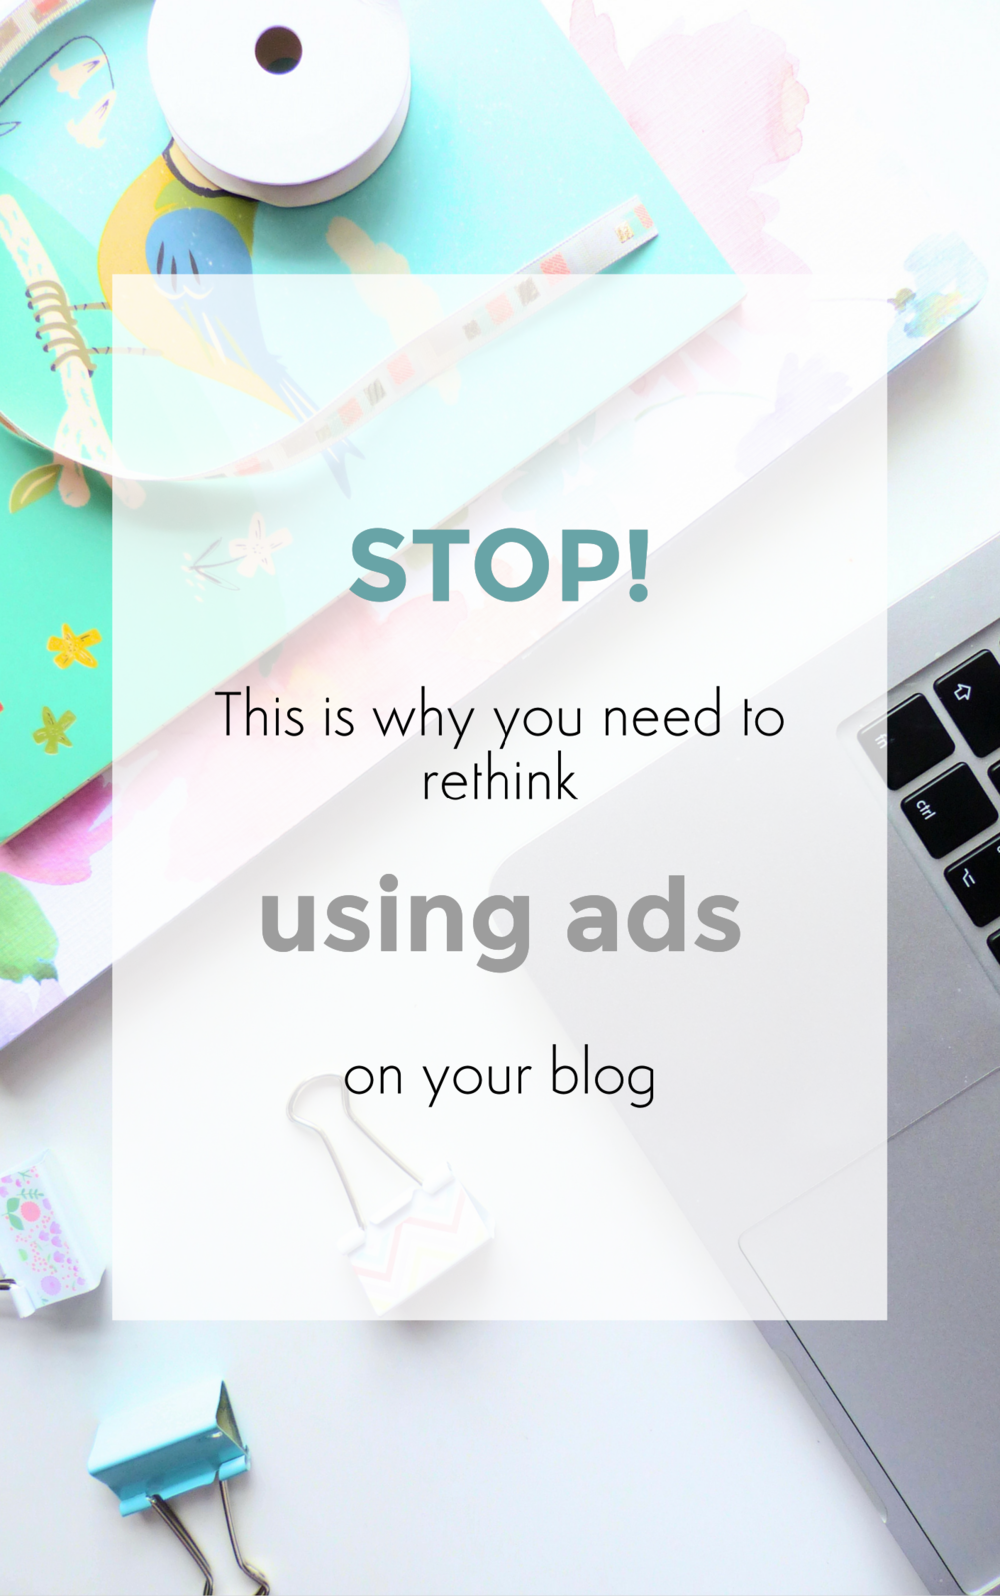 stop! this is why you need to rethink using ads on your blog